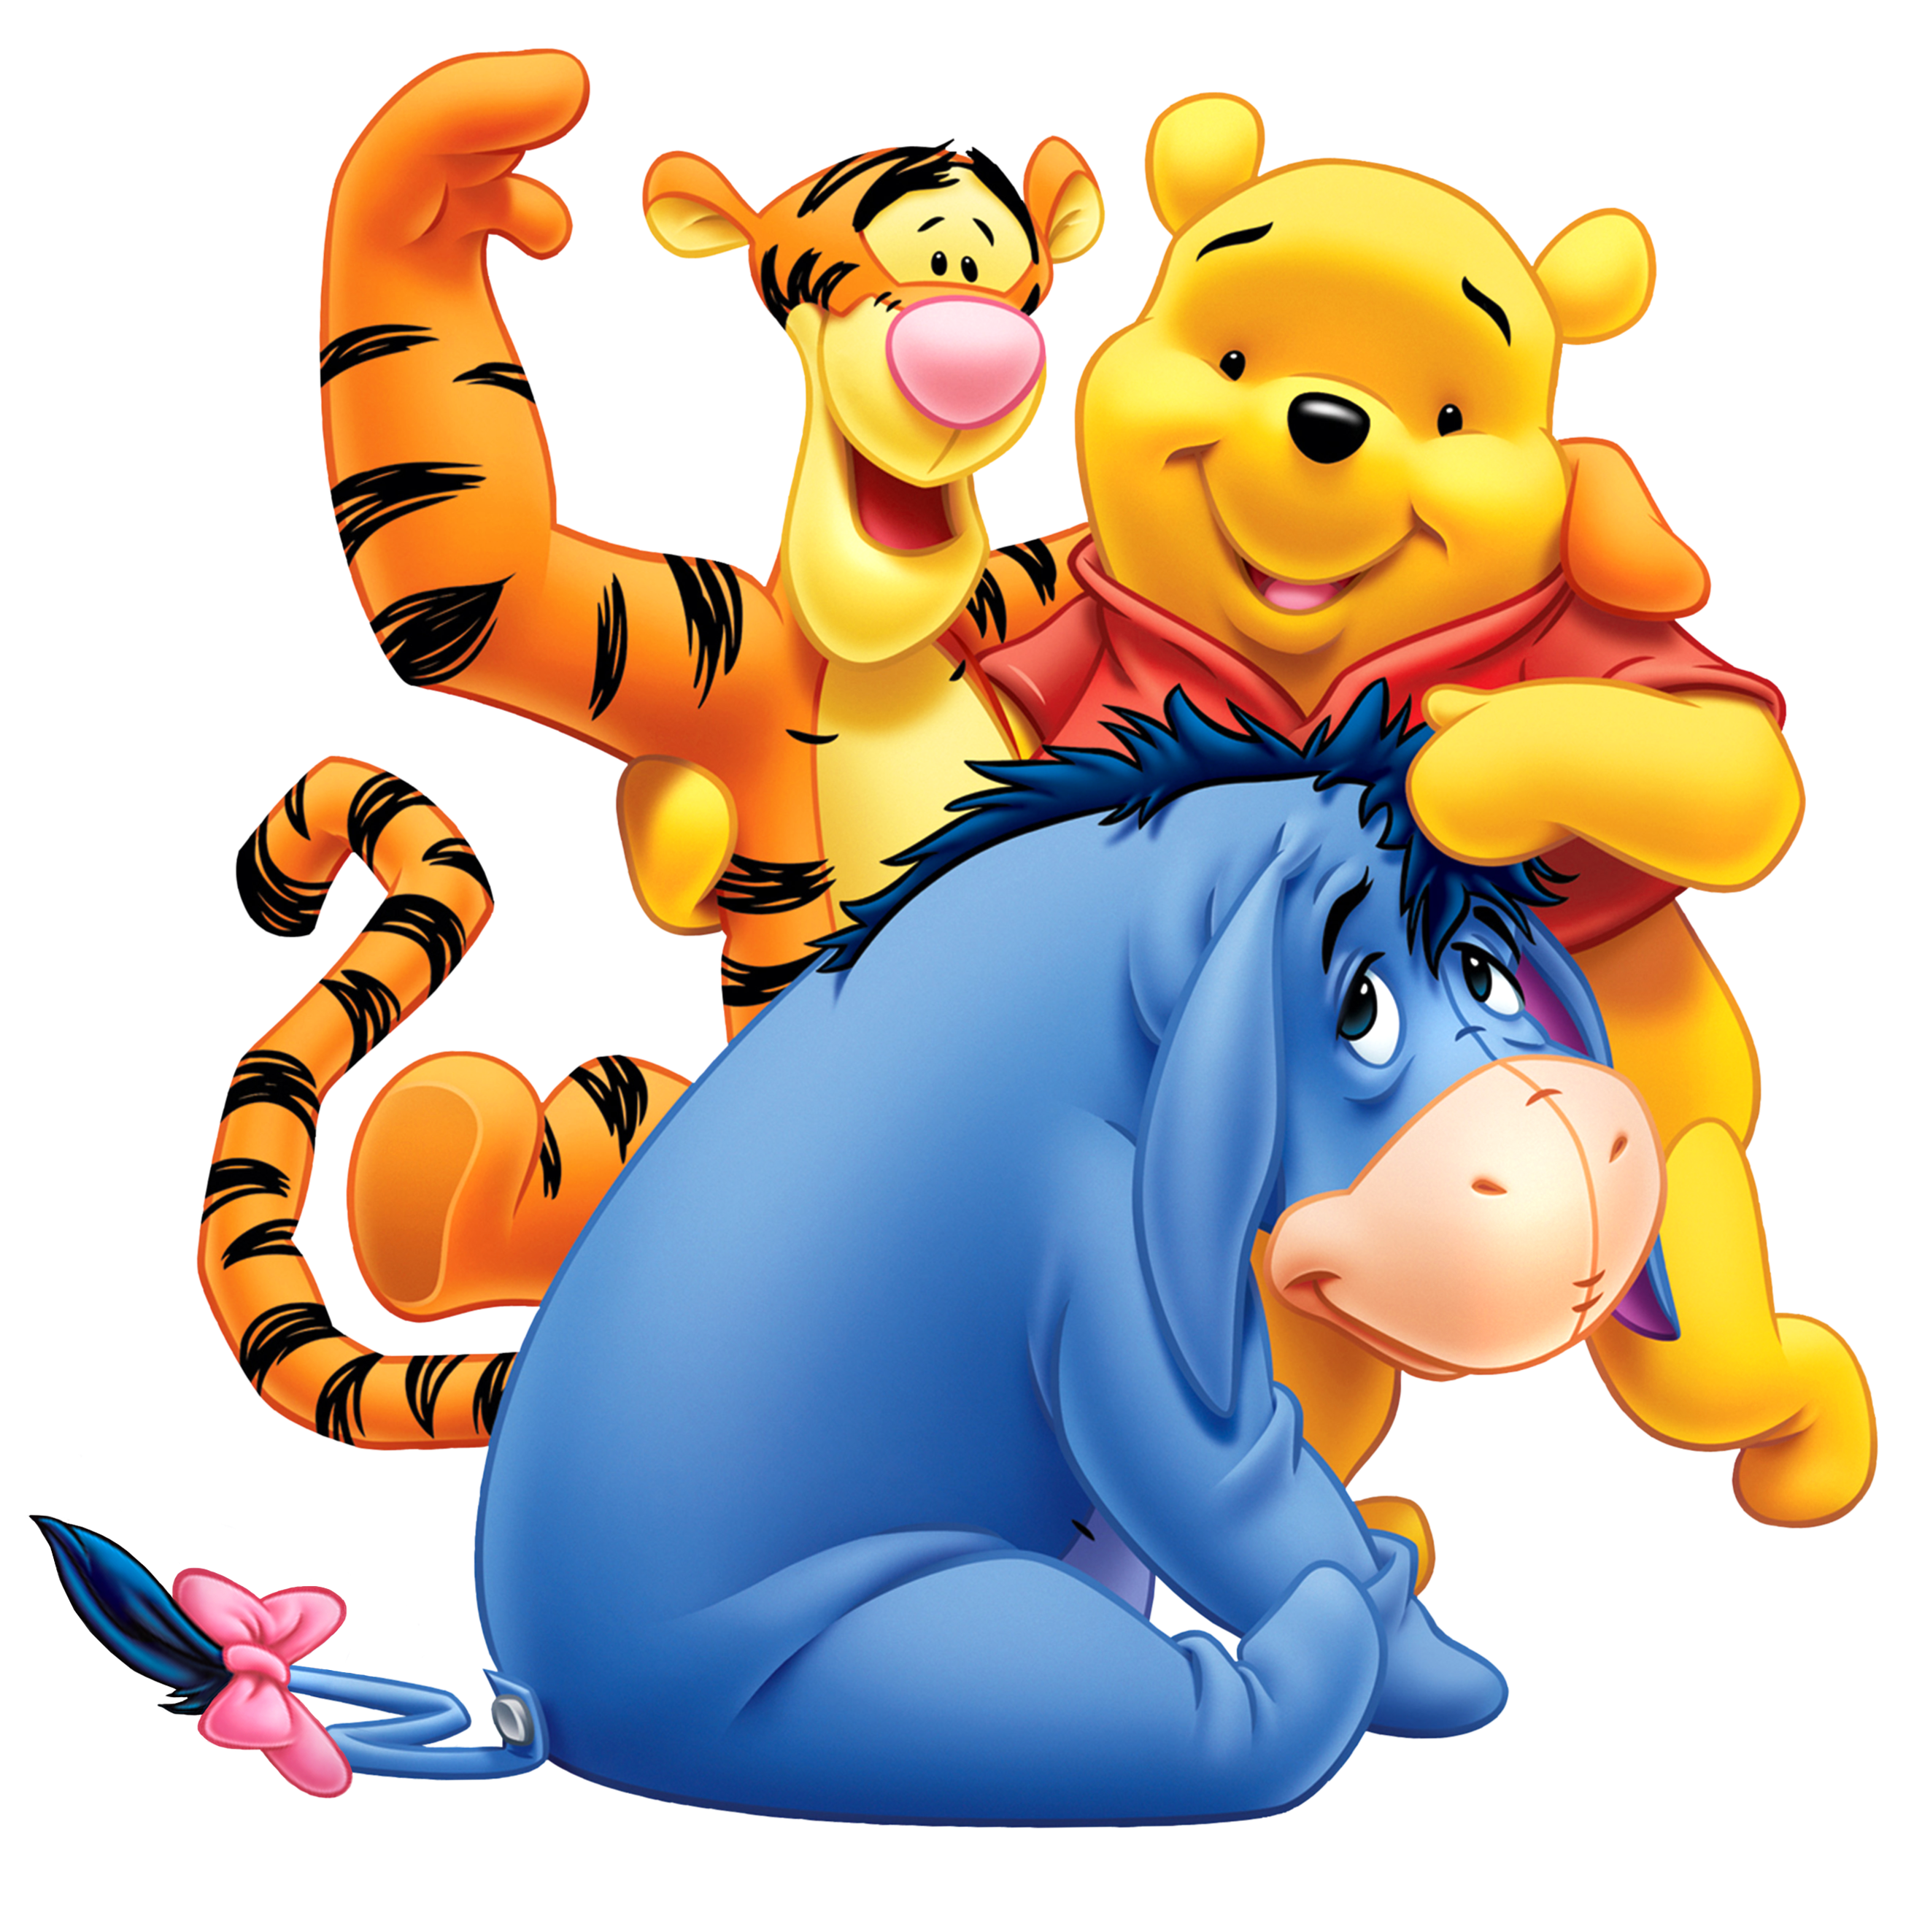 Winnie the pooh halloween clipart clip royalty free library Winnie the Pooh Eeyore and Tiger Transparent PNG Clip Art Image ... clip royalty free library